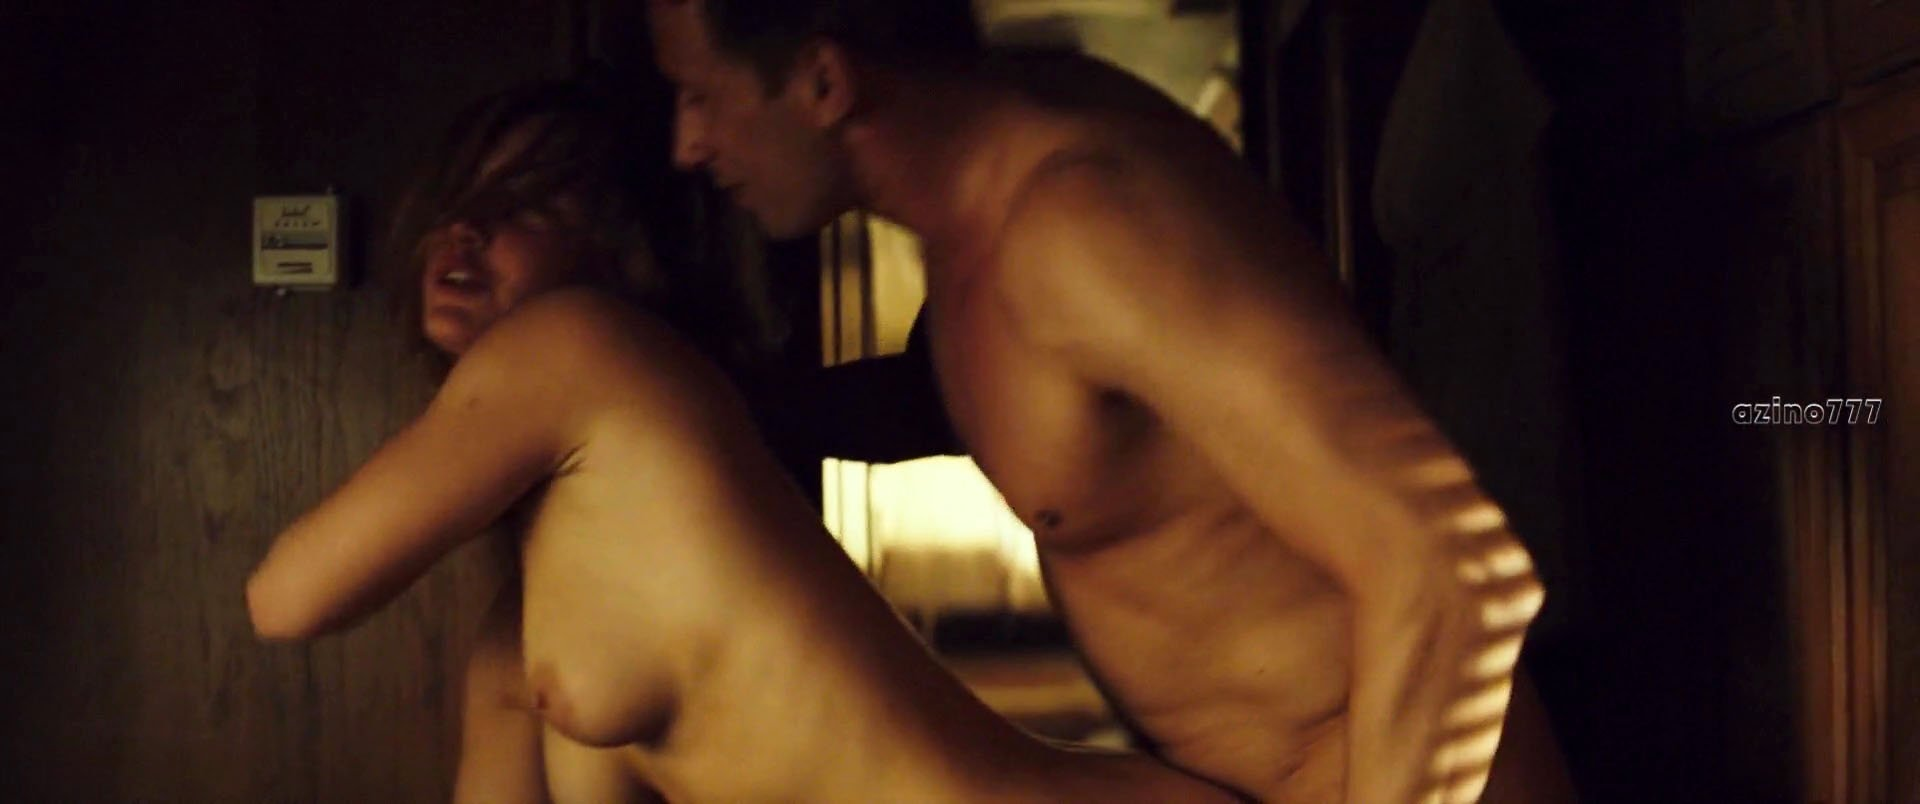 Hottest nude scenes in movies-3991